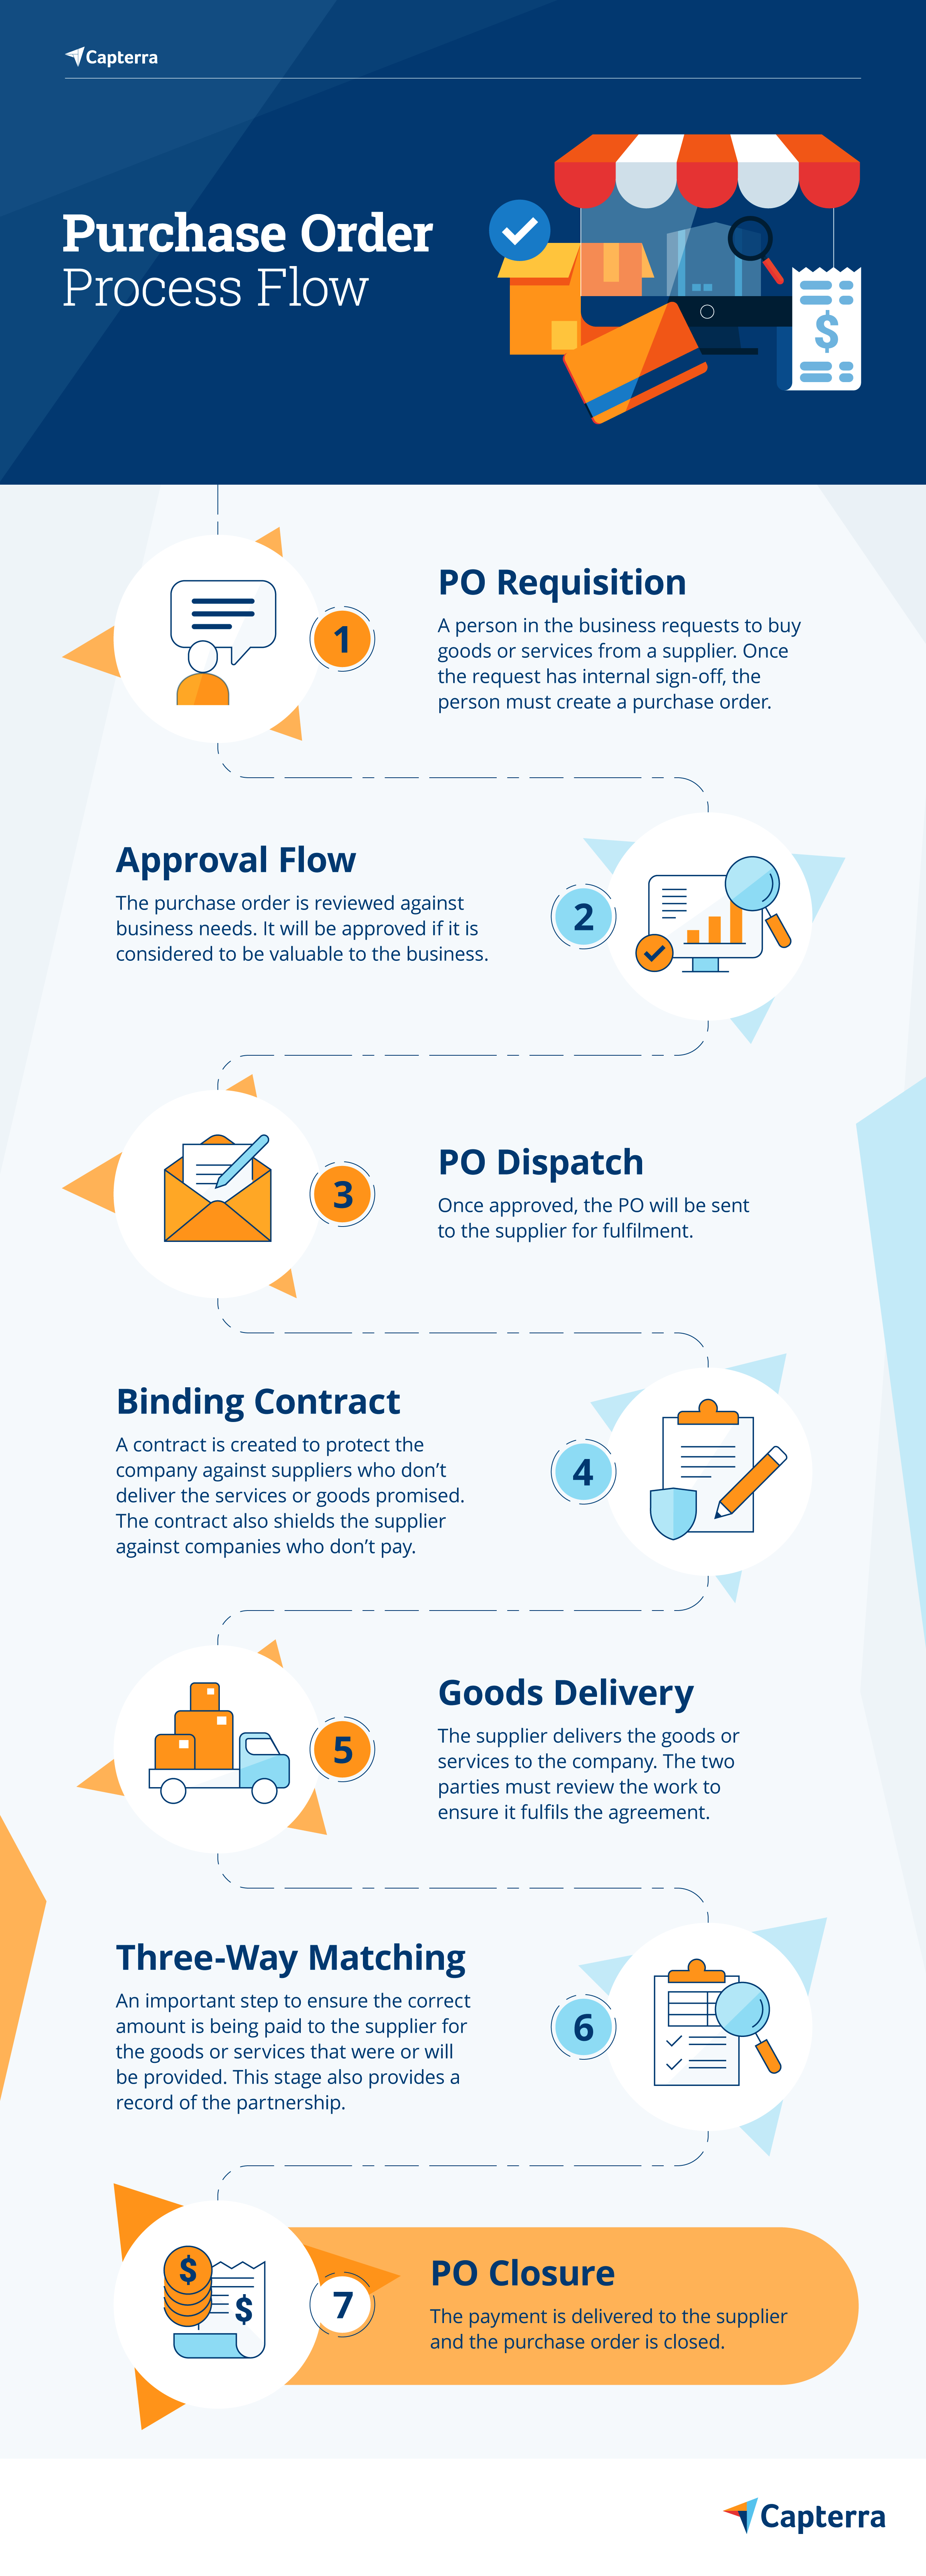 Infographic to show the purchase order process flow